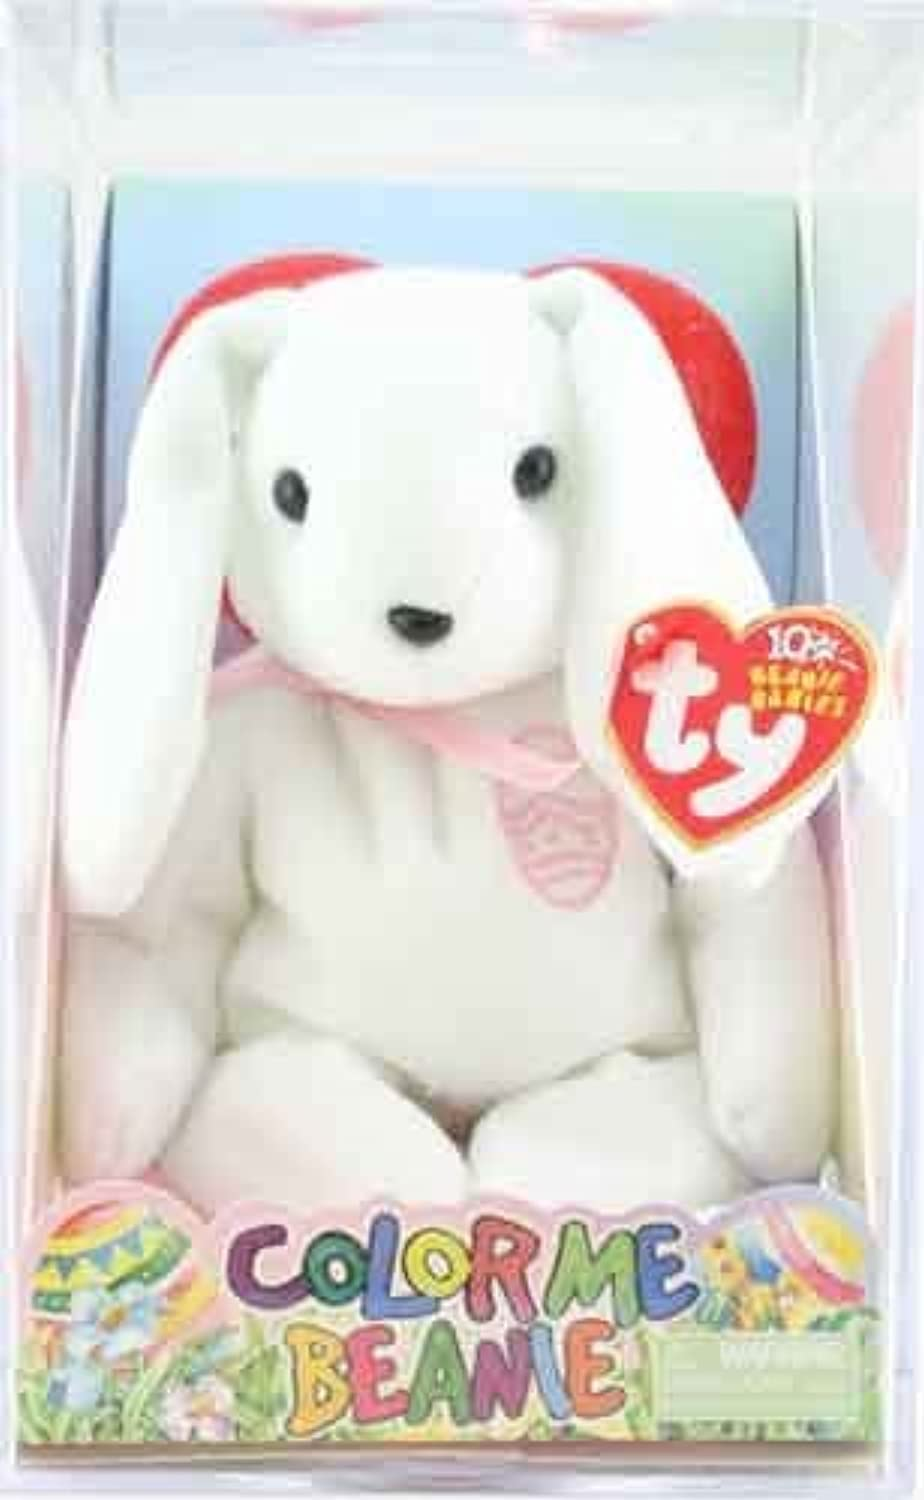 TY Beanie Baby  COLOR ME BEANIE THE BUNNY Pink Ribbon & embroidered Egg (Complete Kit) by Ty